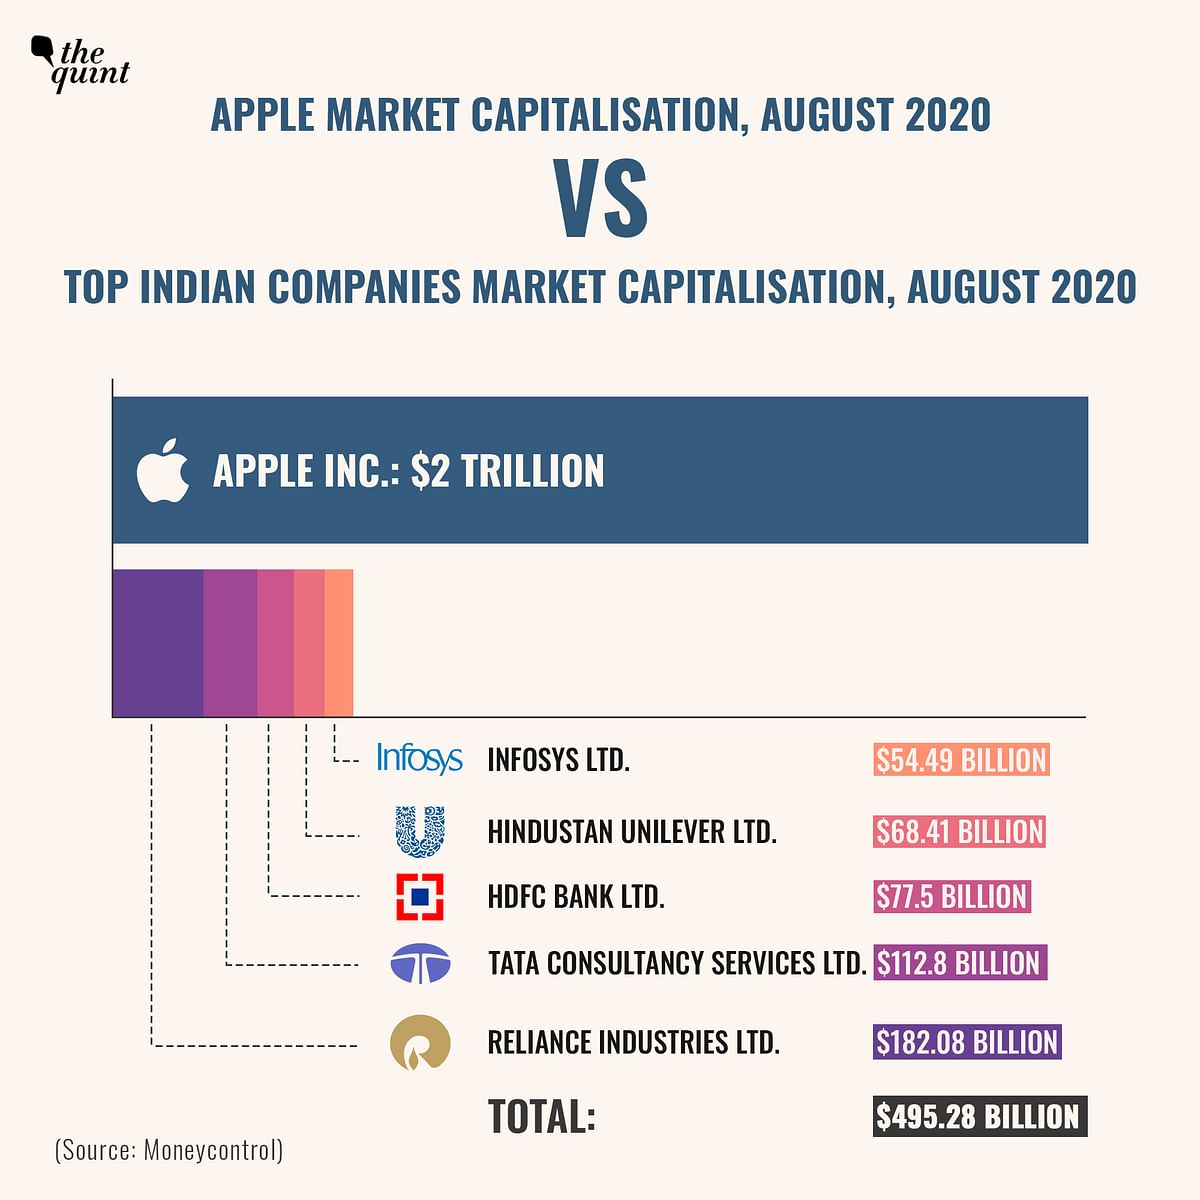 Here's a comparison between Apple market cap and market cap of top Indian companies.